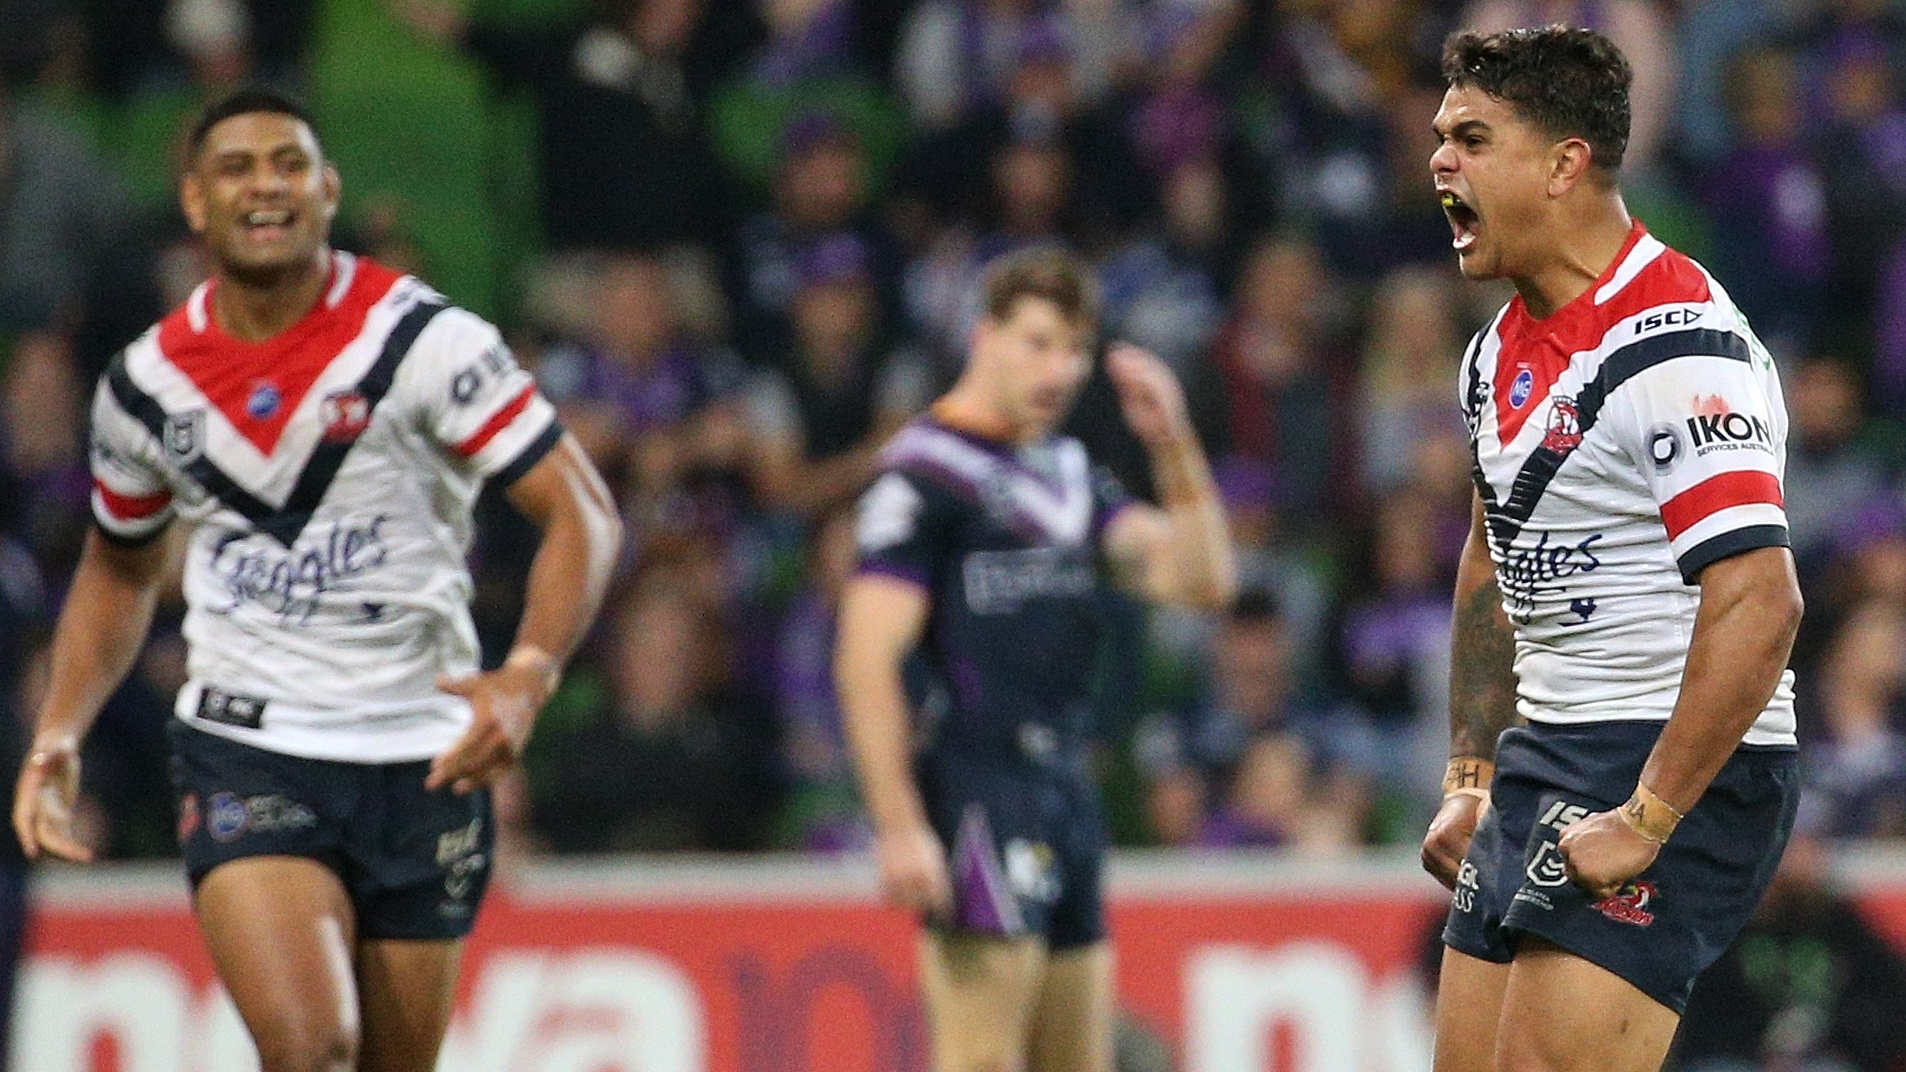 NRL Highlights: Storm v Roosters - Round 6